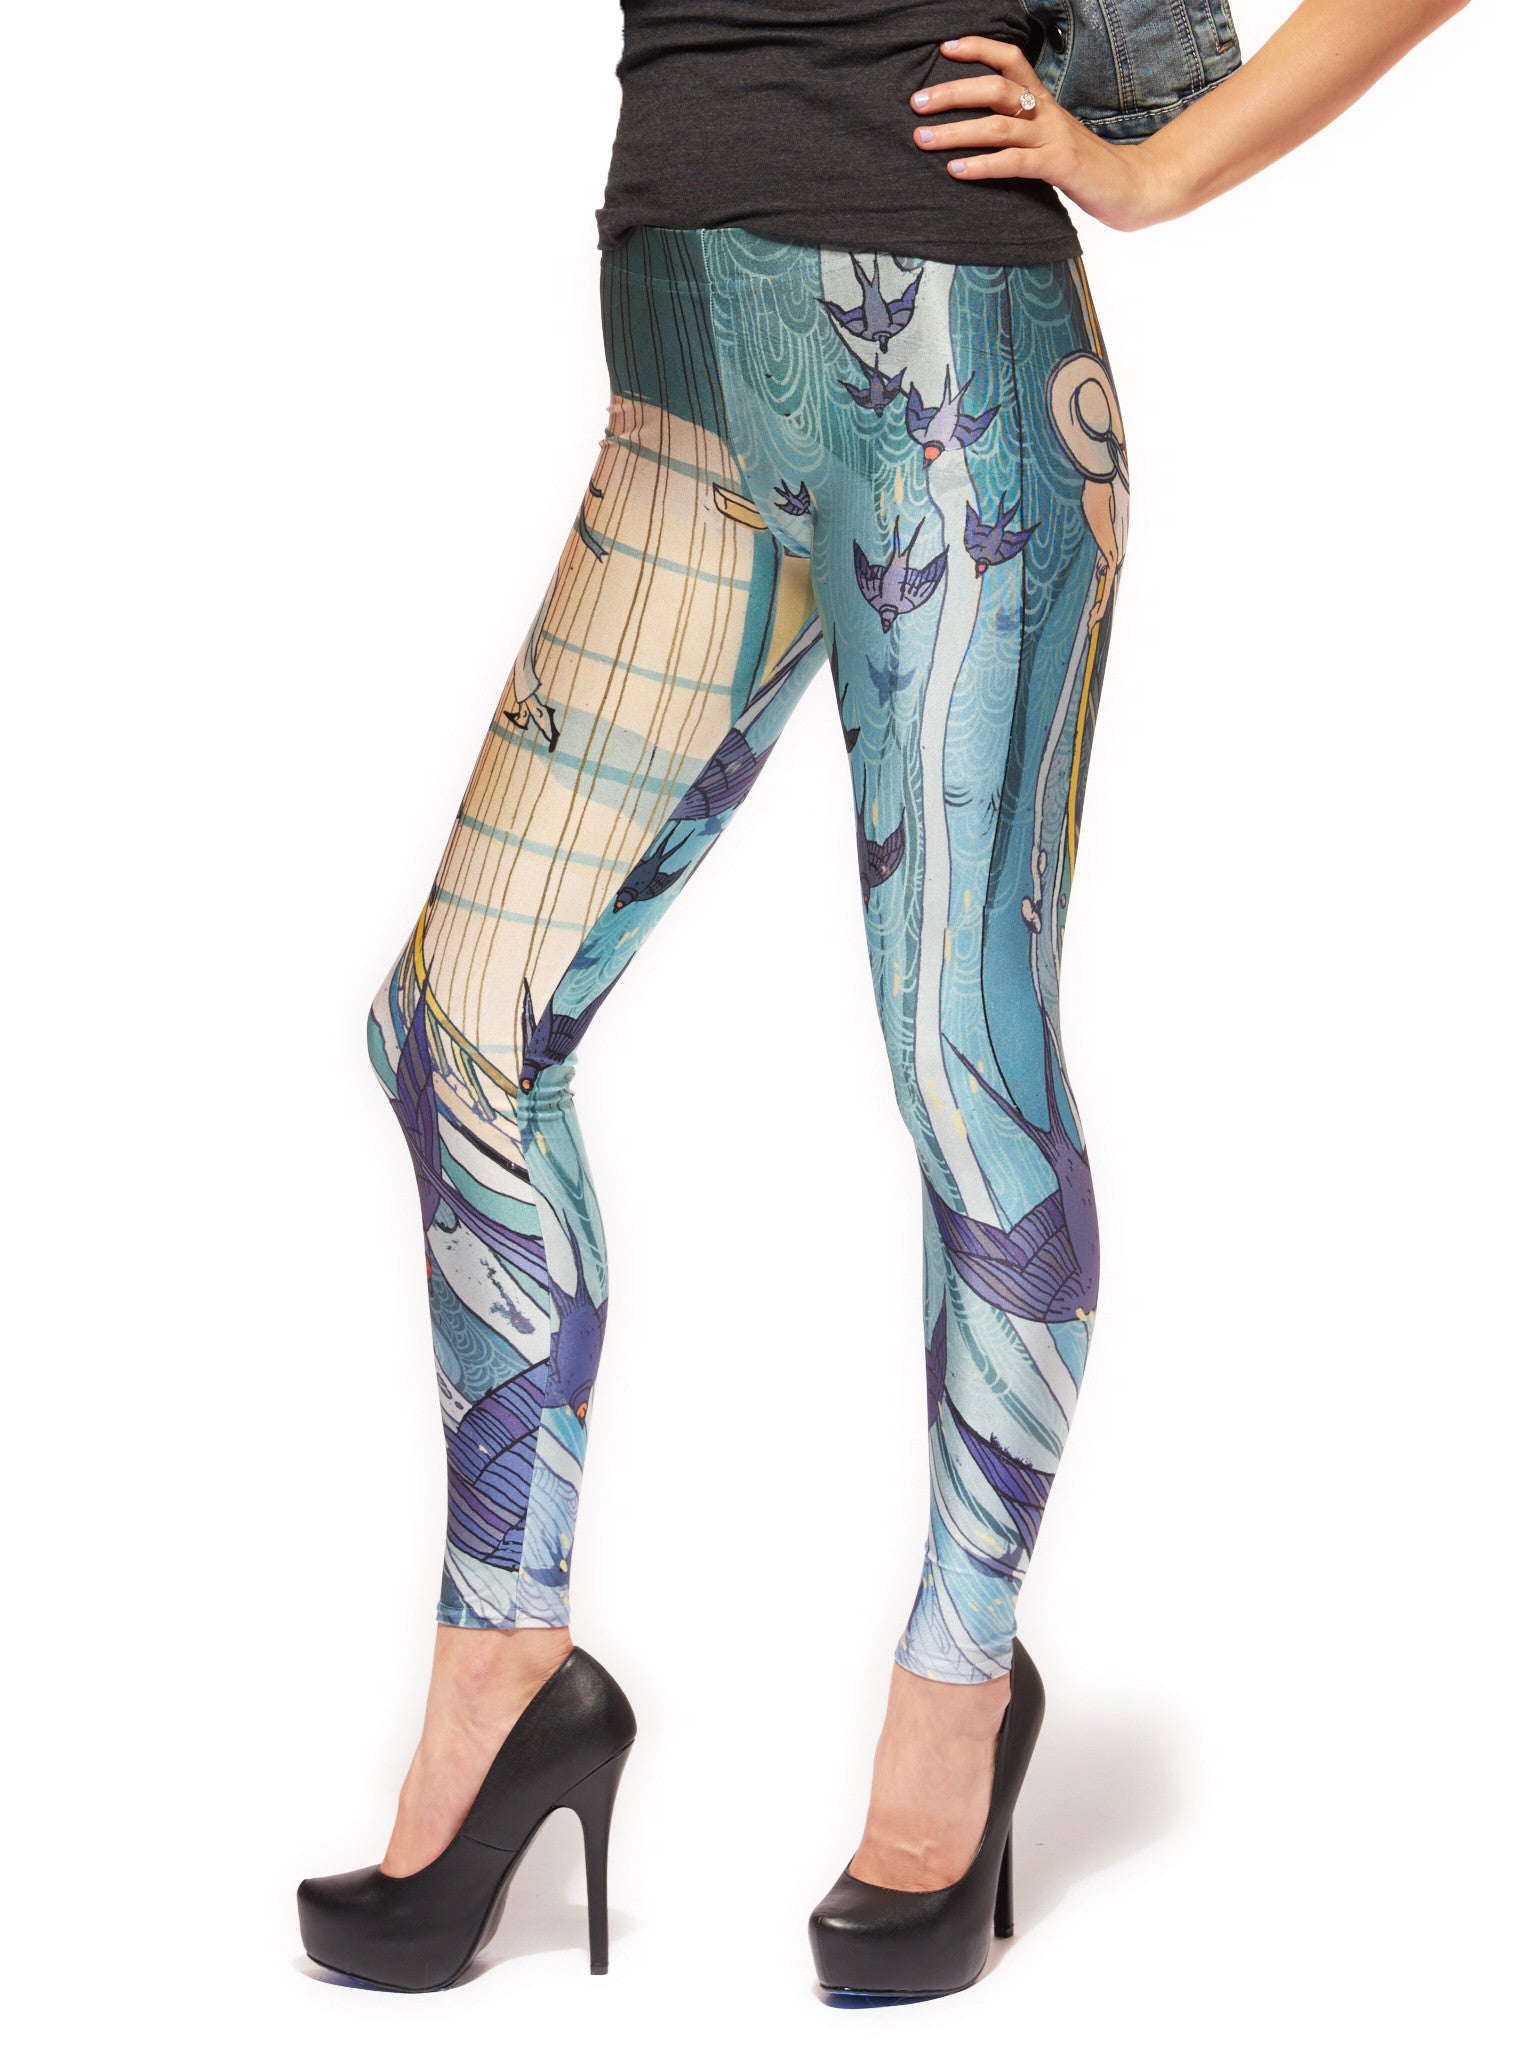 Cassarole Queen West Leggings - Nuvango  - 4